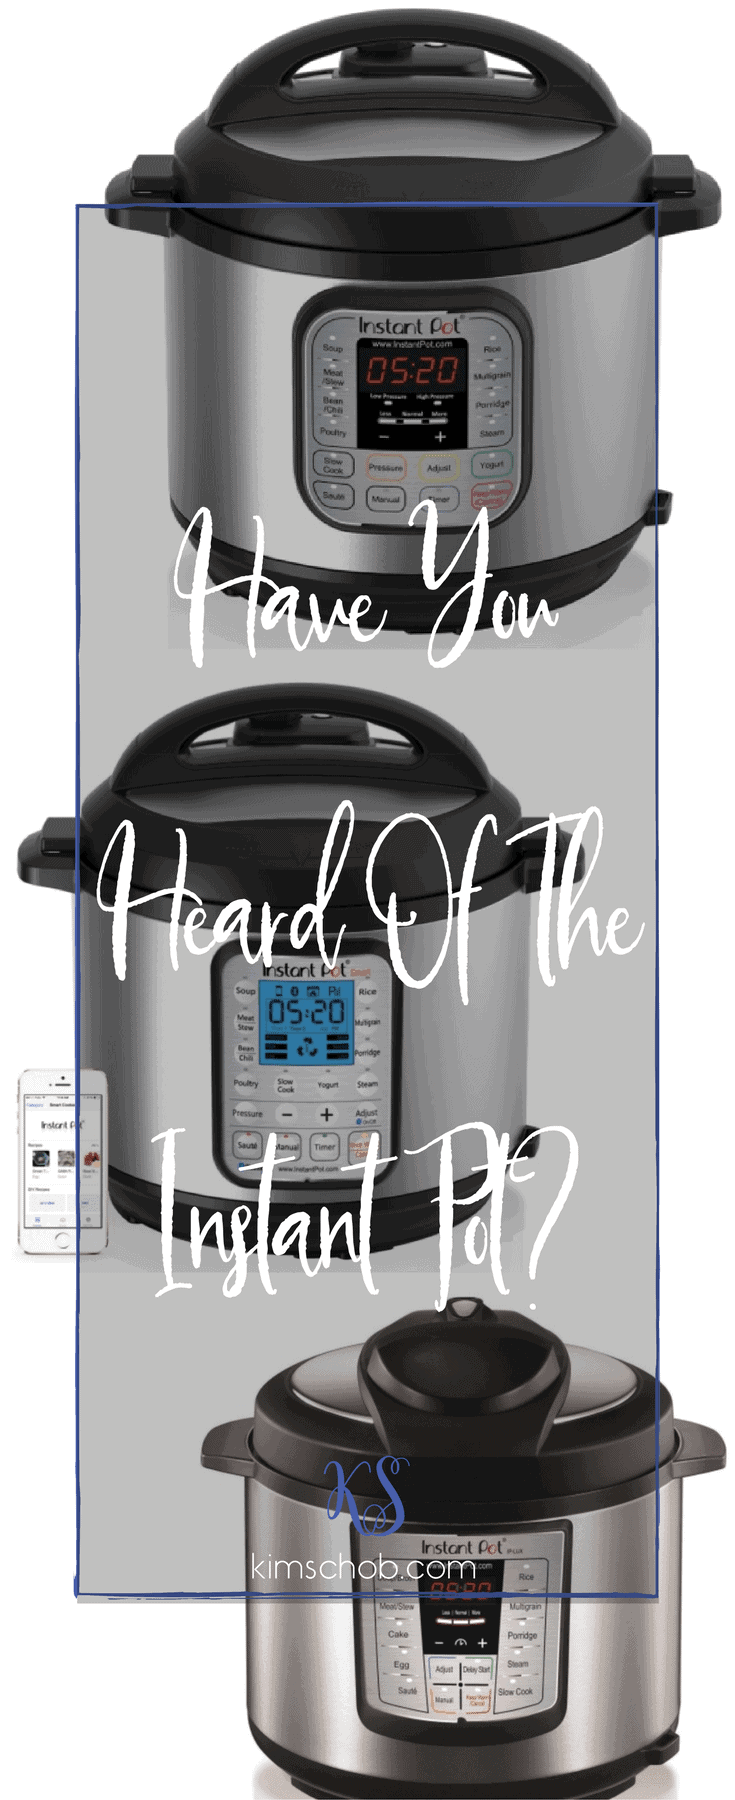 Have you heard of the Instant Pot? it\'s the perfect solution for those who like the idea of being able to cook a meal in minutes | kimschob.com #instapot #instantpot #kimschob